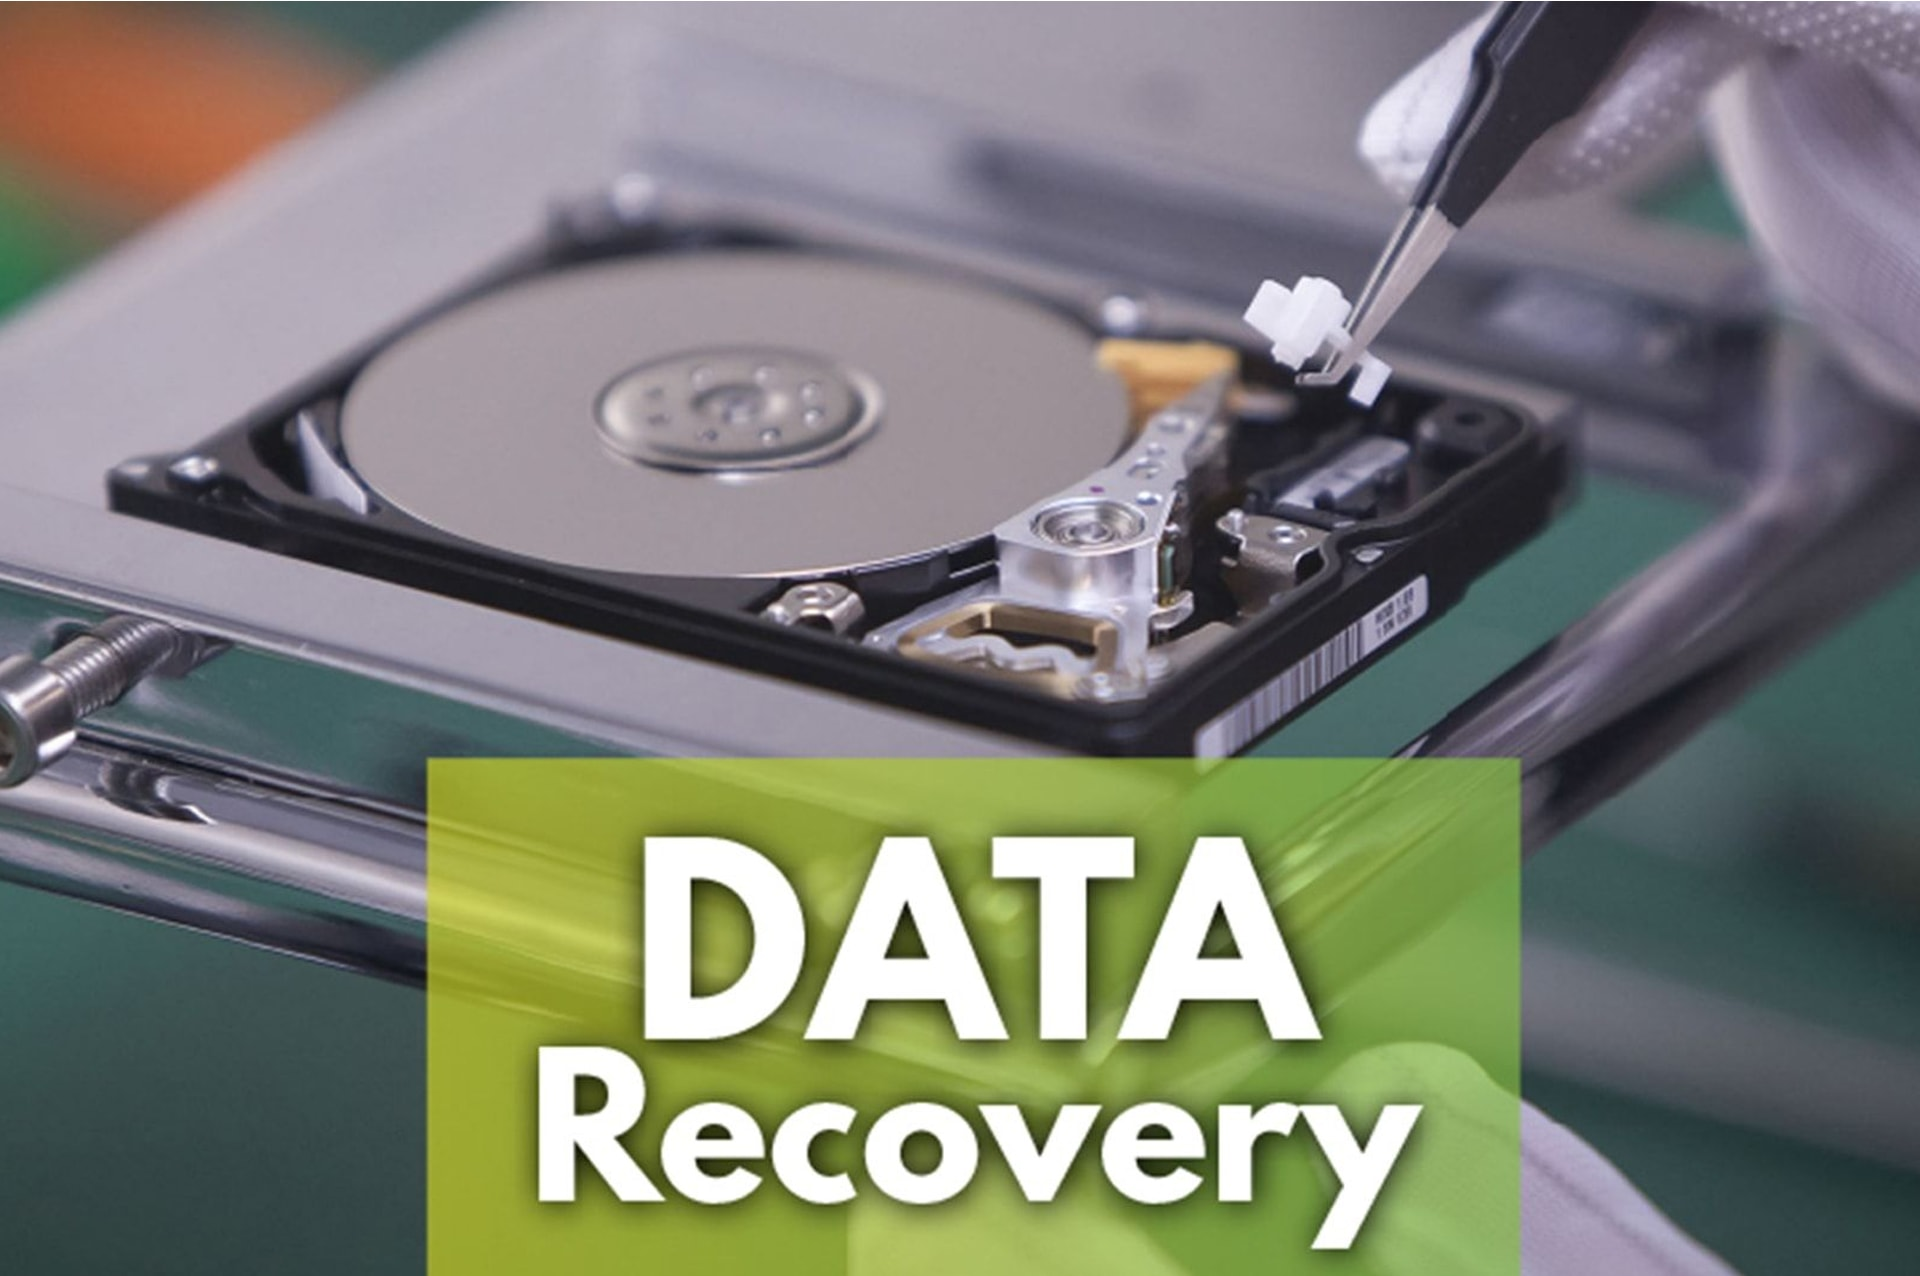 RAID Data Recovery NYC Services from Small to Enterprise Level Data